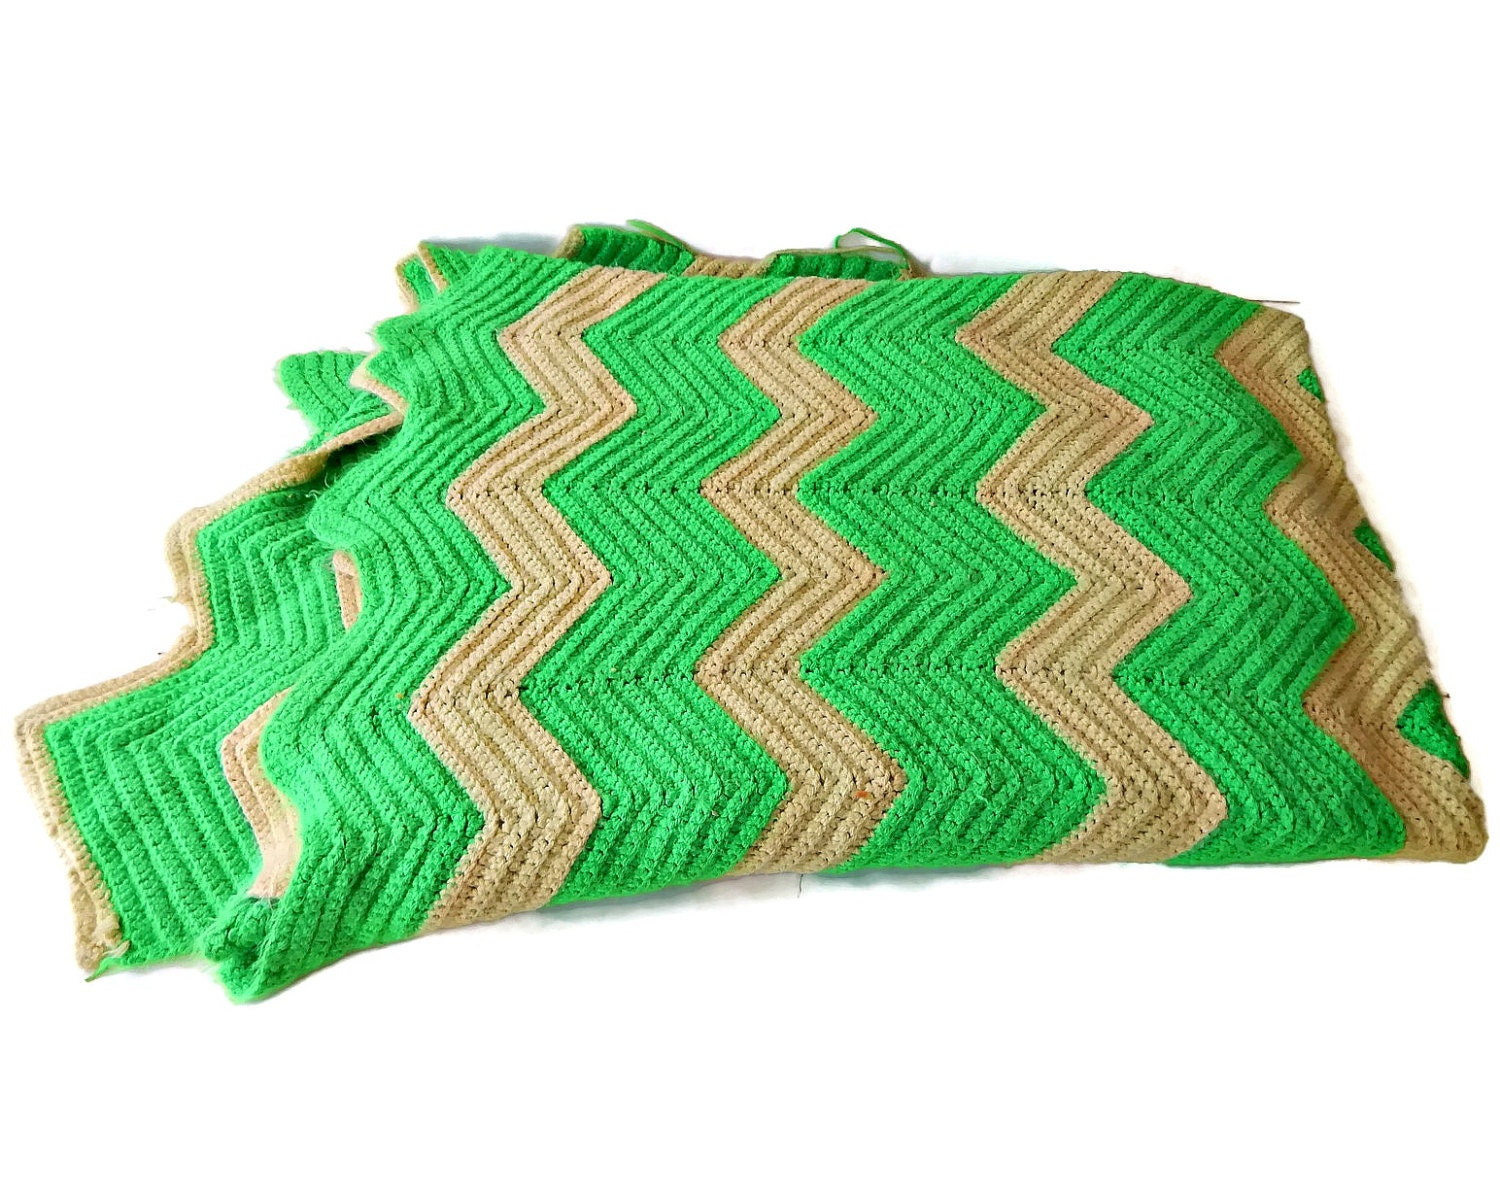 Green Crochet Afghan Pattern : Hand Crocheted Afghan Chevron Pattern Green Yellow